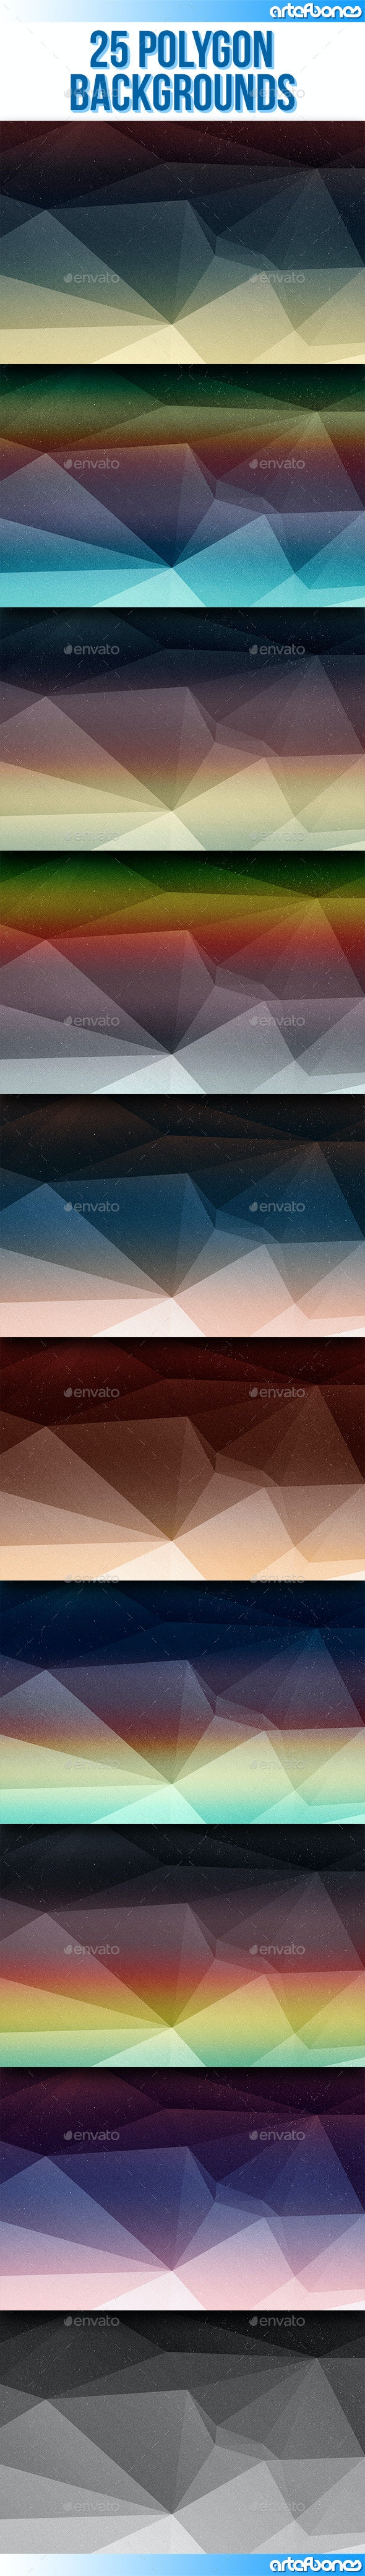 25 Polygon Backgrounds V.4 - Abstract Backgrounds